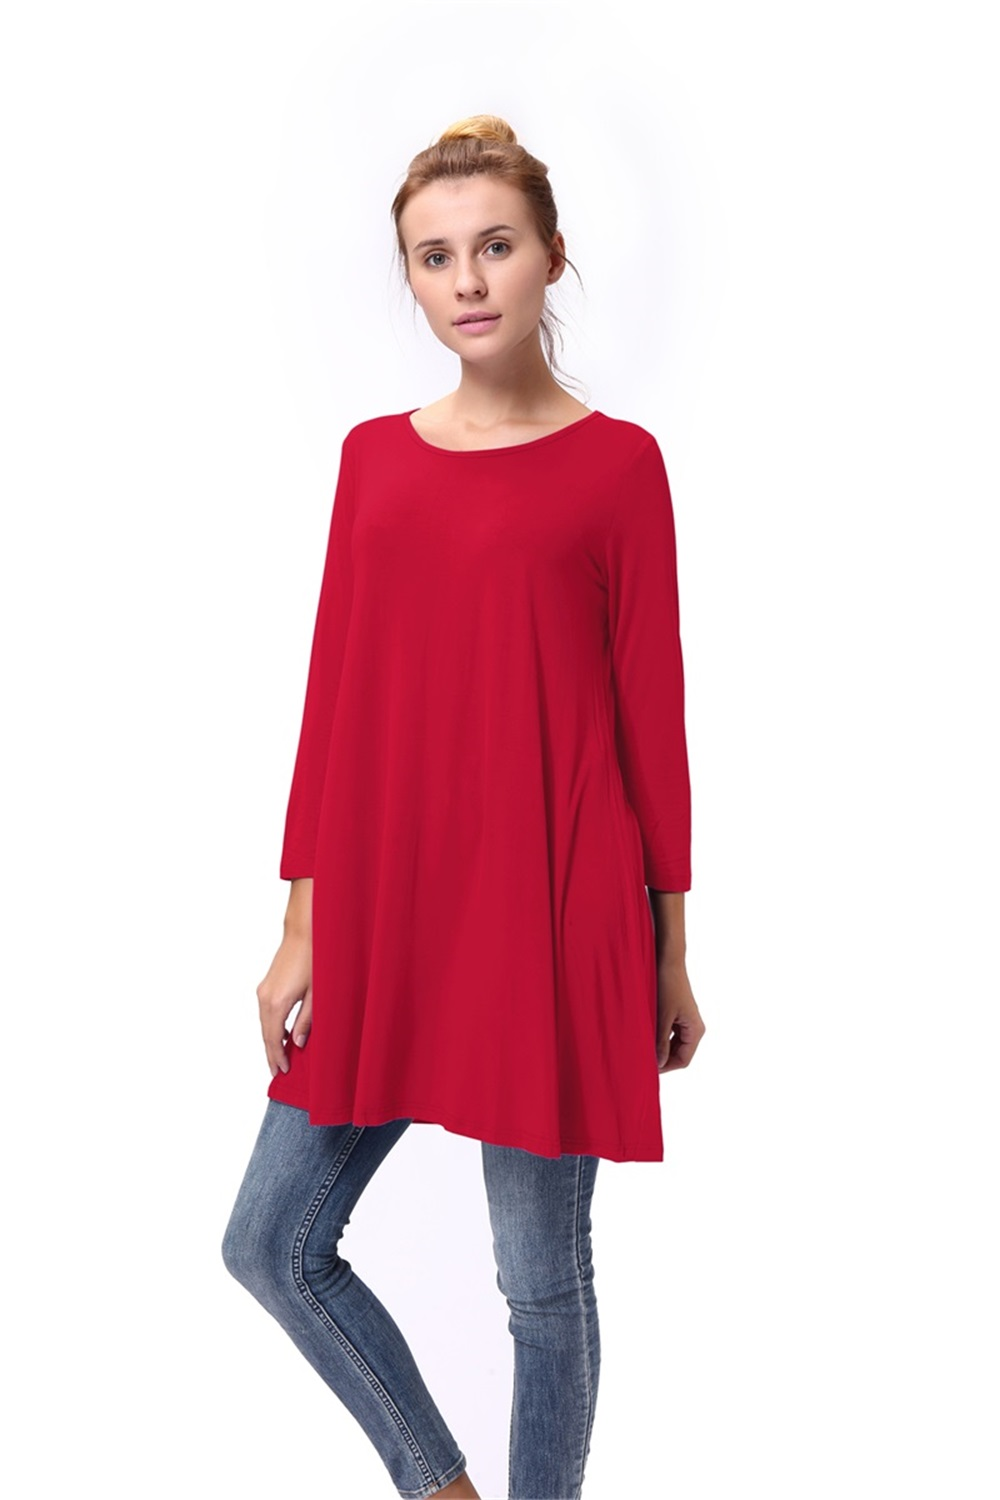 Women-039-s-Long-Tunic-Top-3-4-Sleeve-Dolman-Boat-Neck-USA-Dress-S-M-L-1X-2X-3X-PLUS thumbnail 8